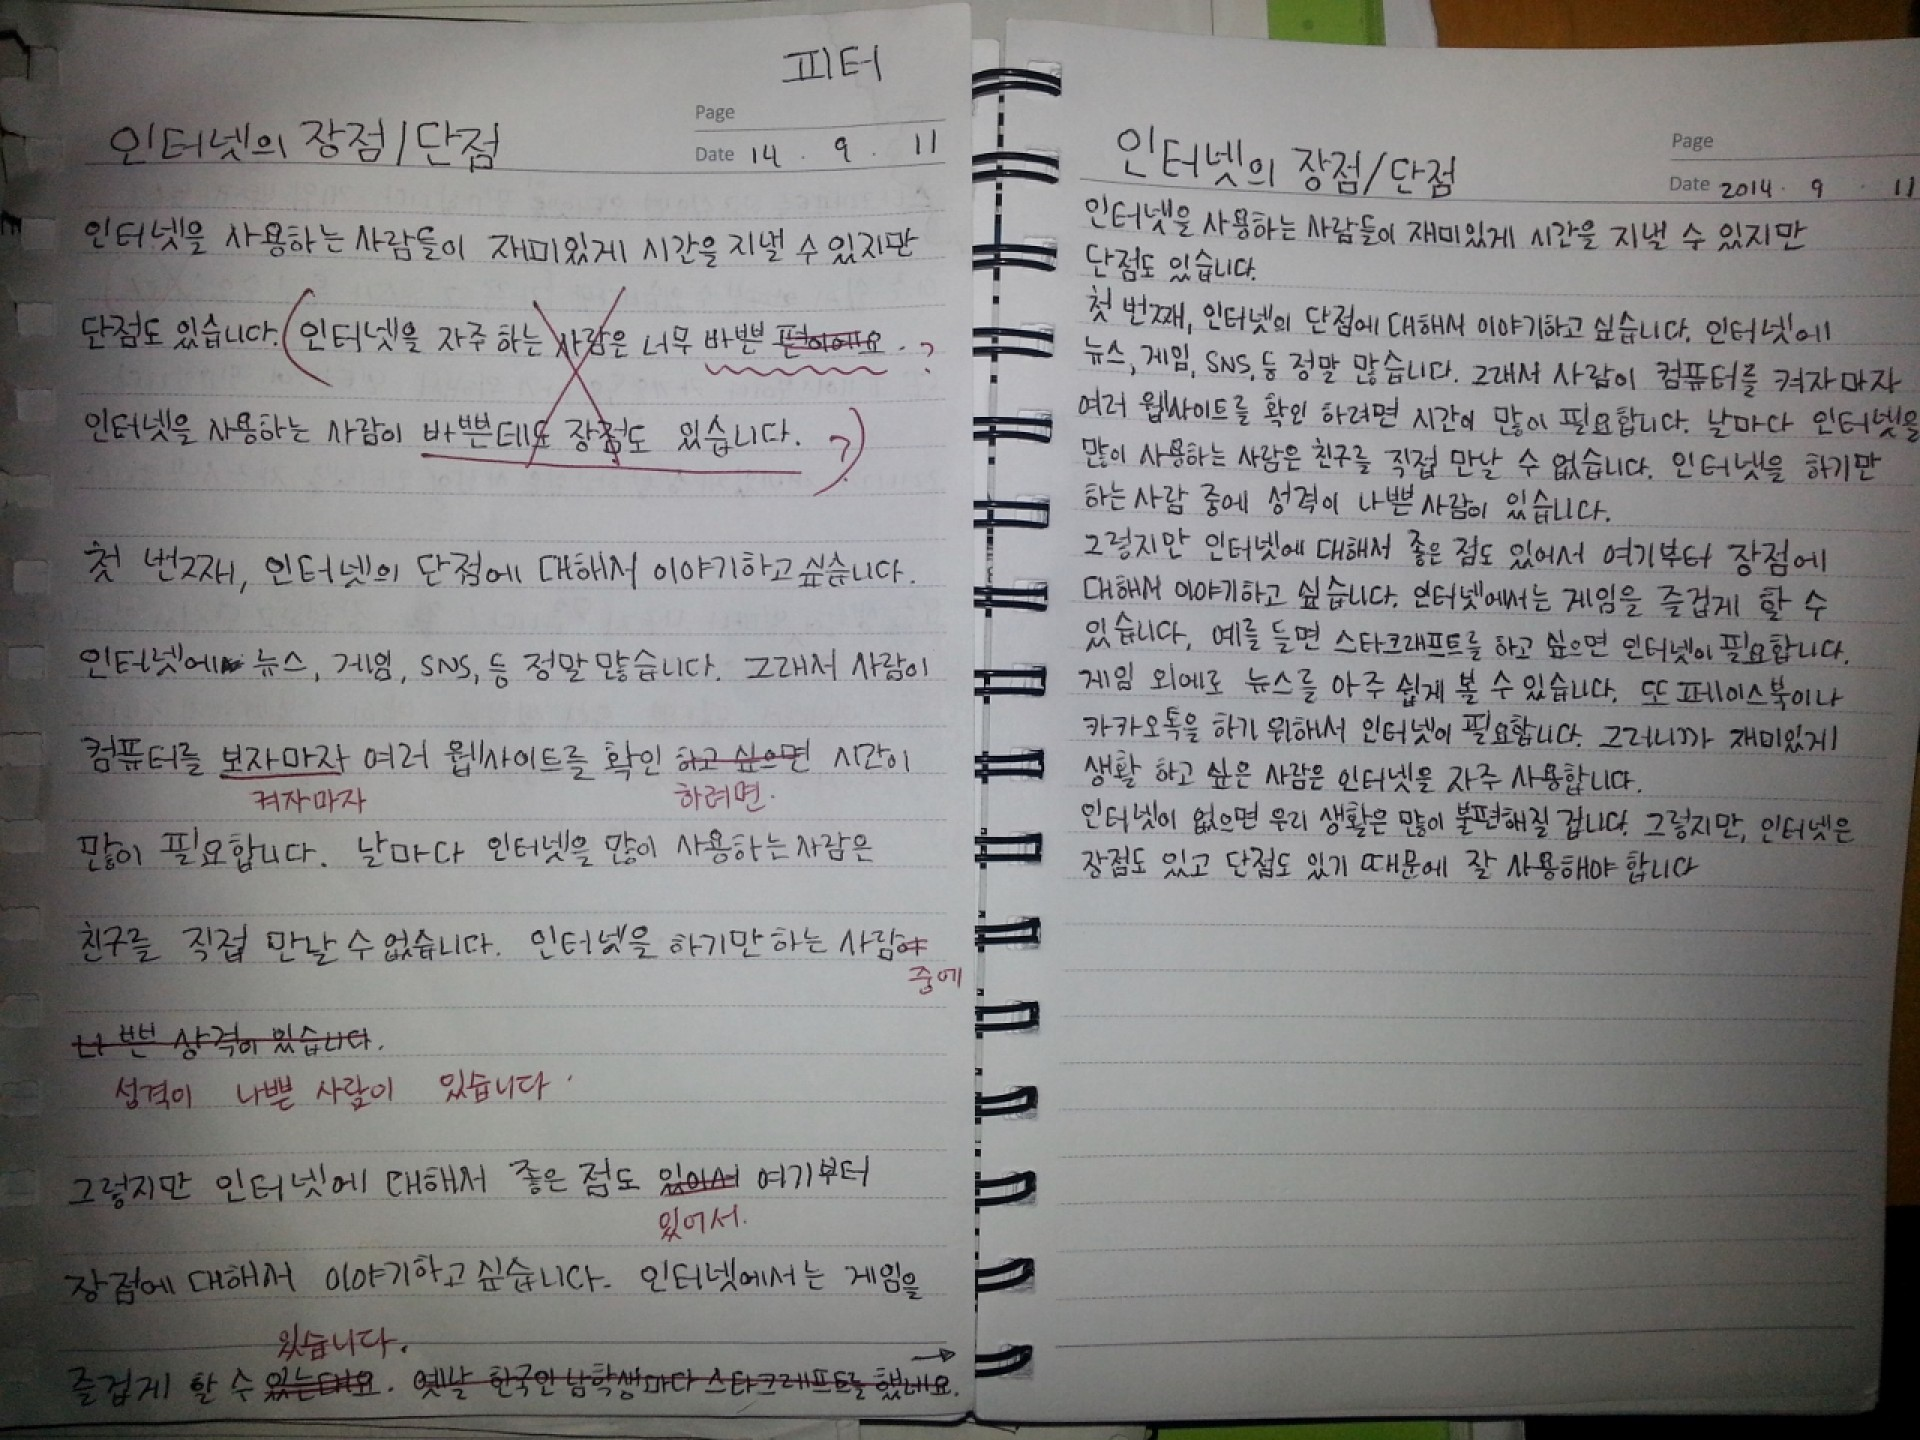 003 Essay About Internet Paper 1280x960 Korean Stirring Examples Myself Contest 1920